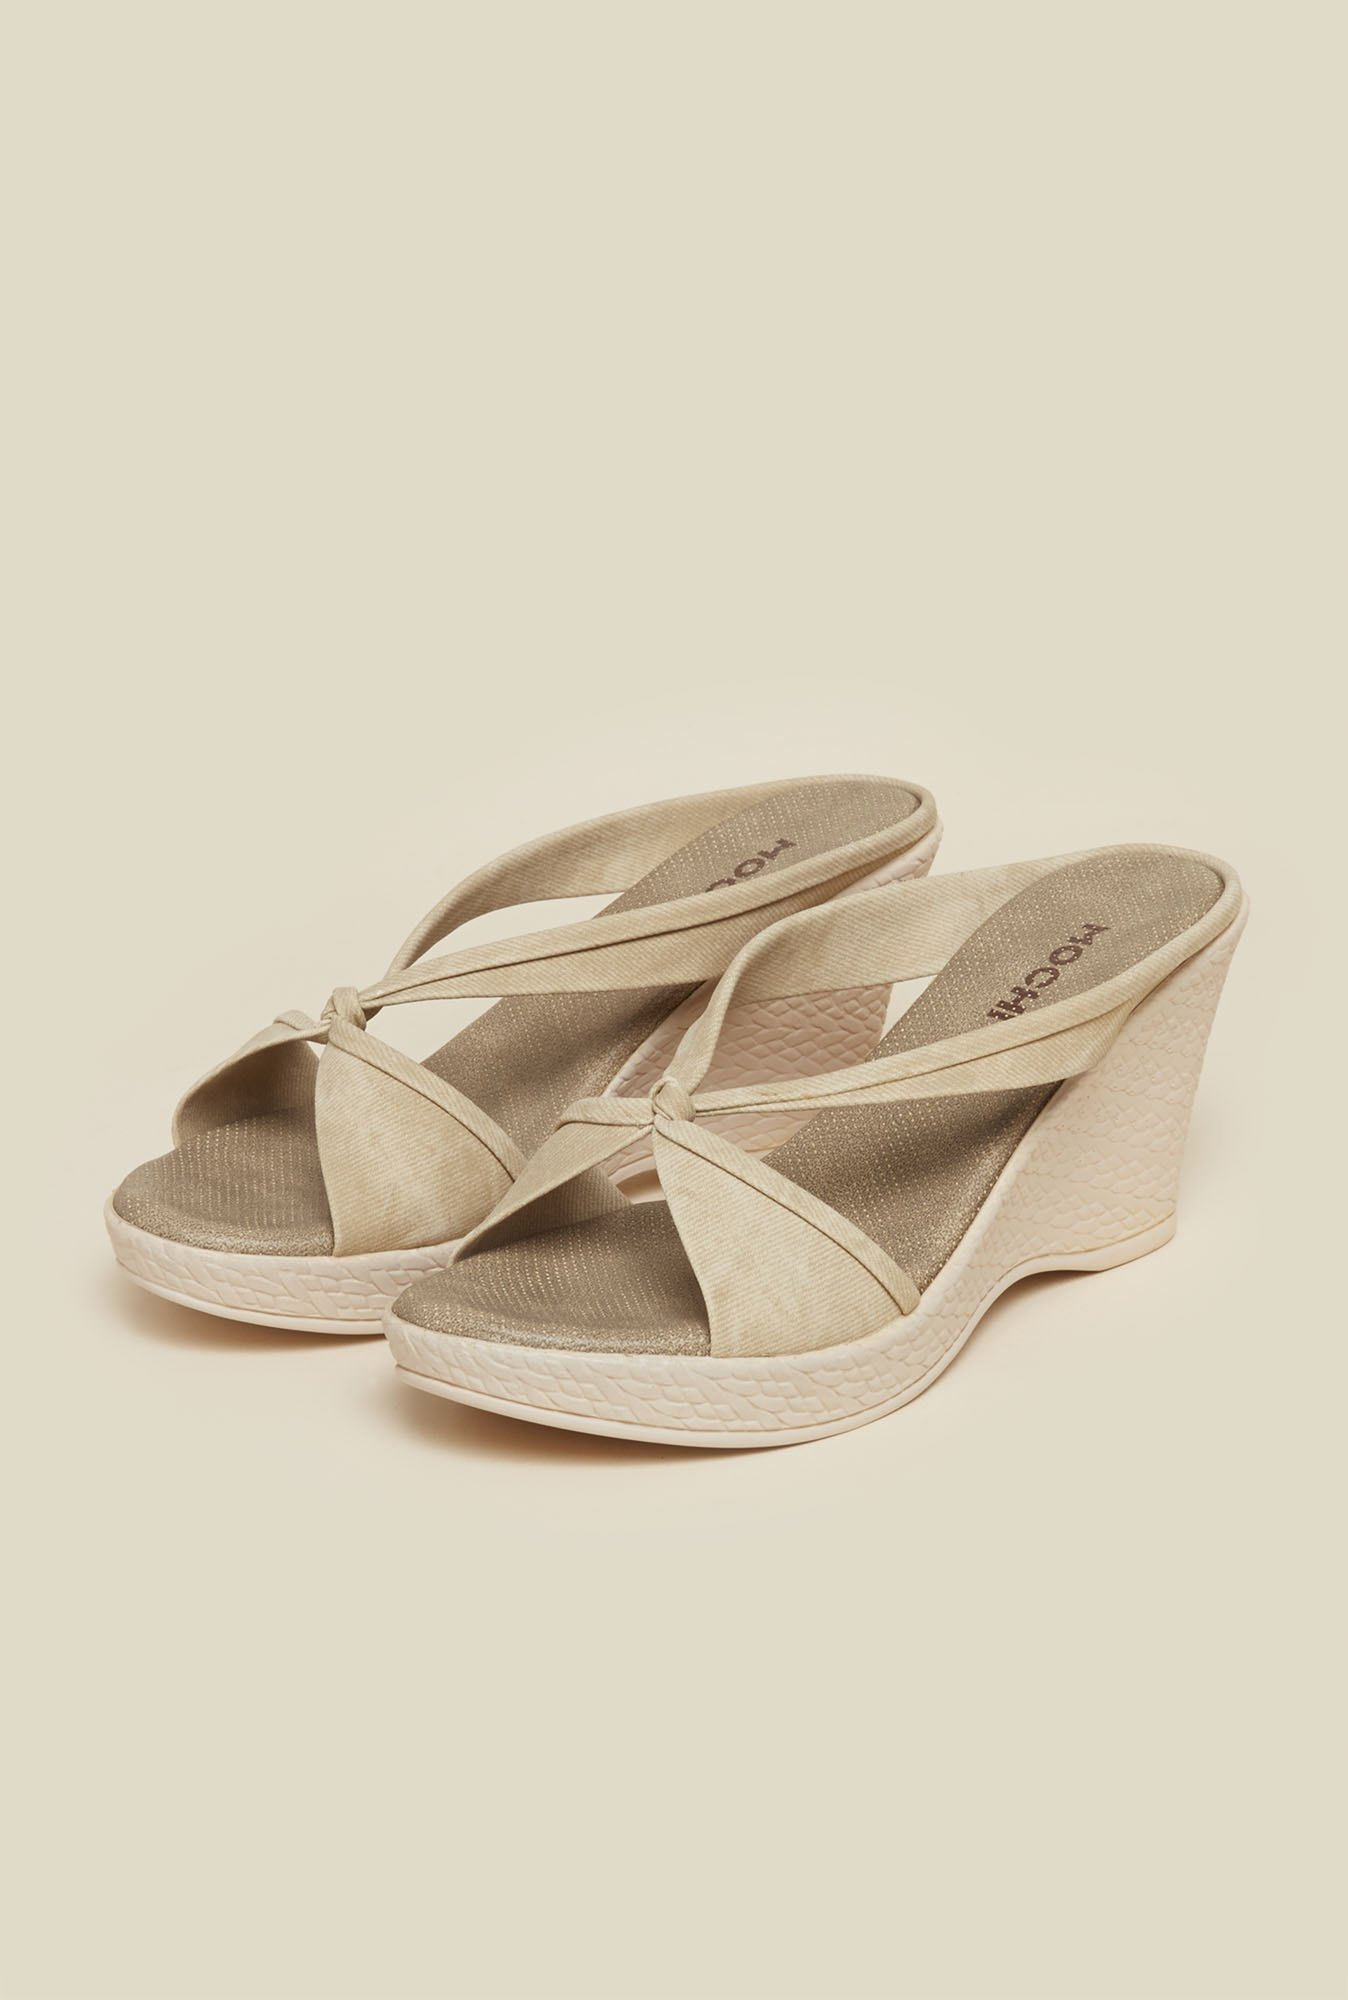 Mochi Beige Cross Strap Casual Wedges